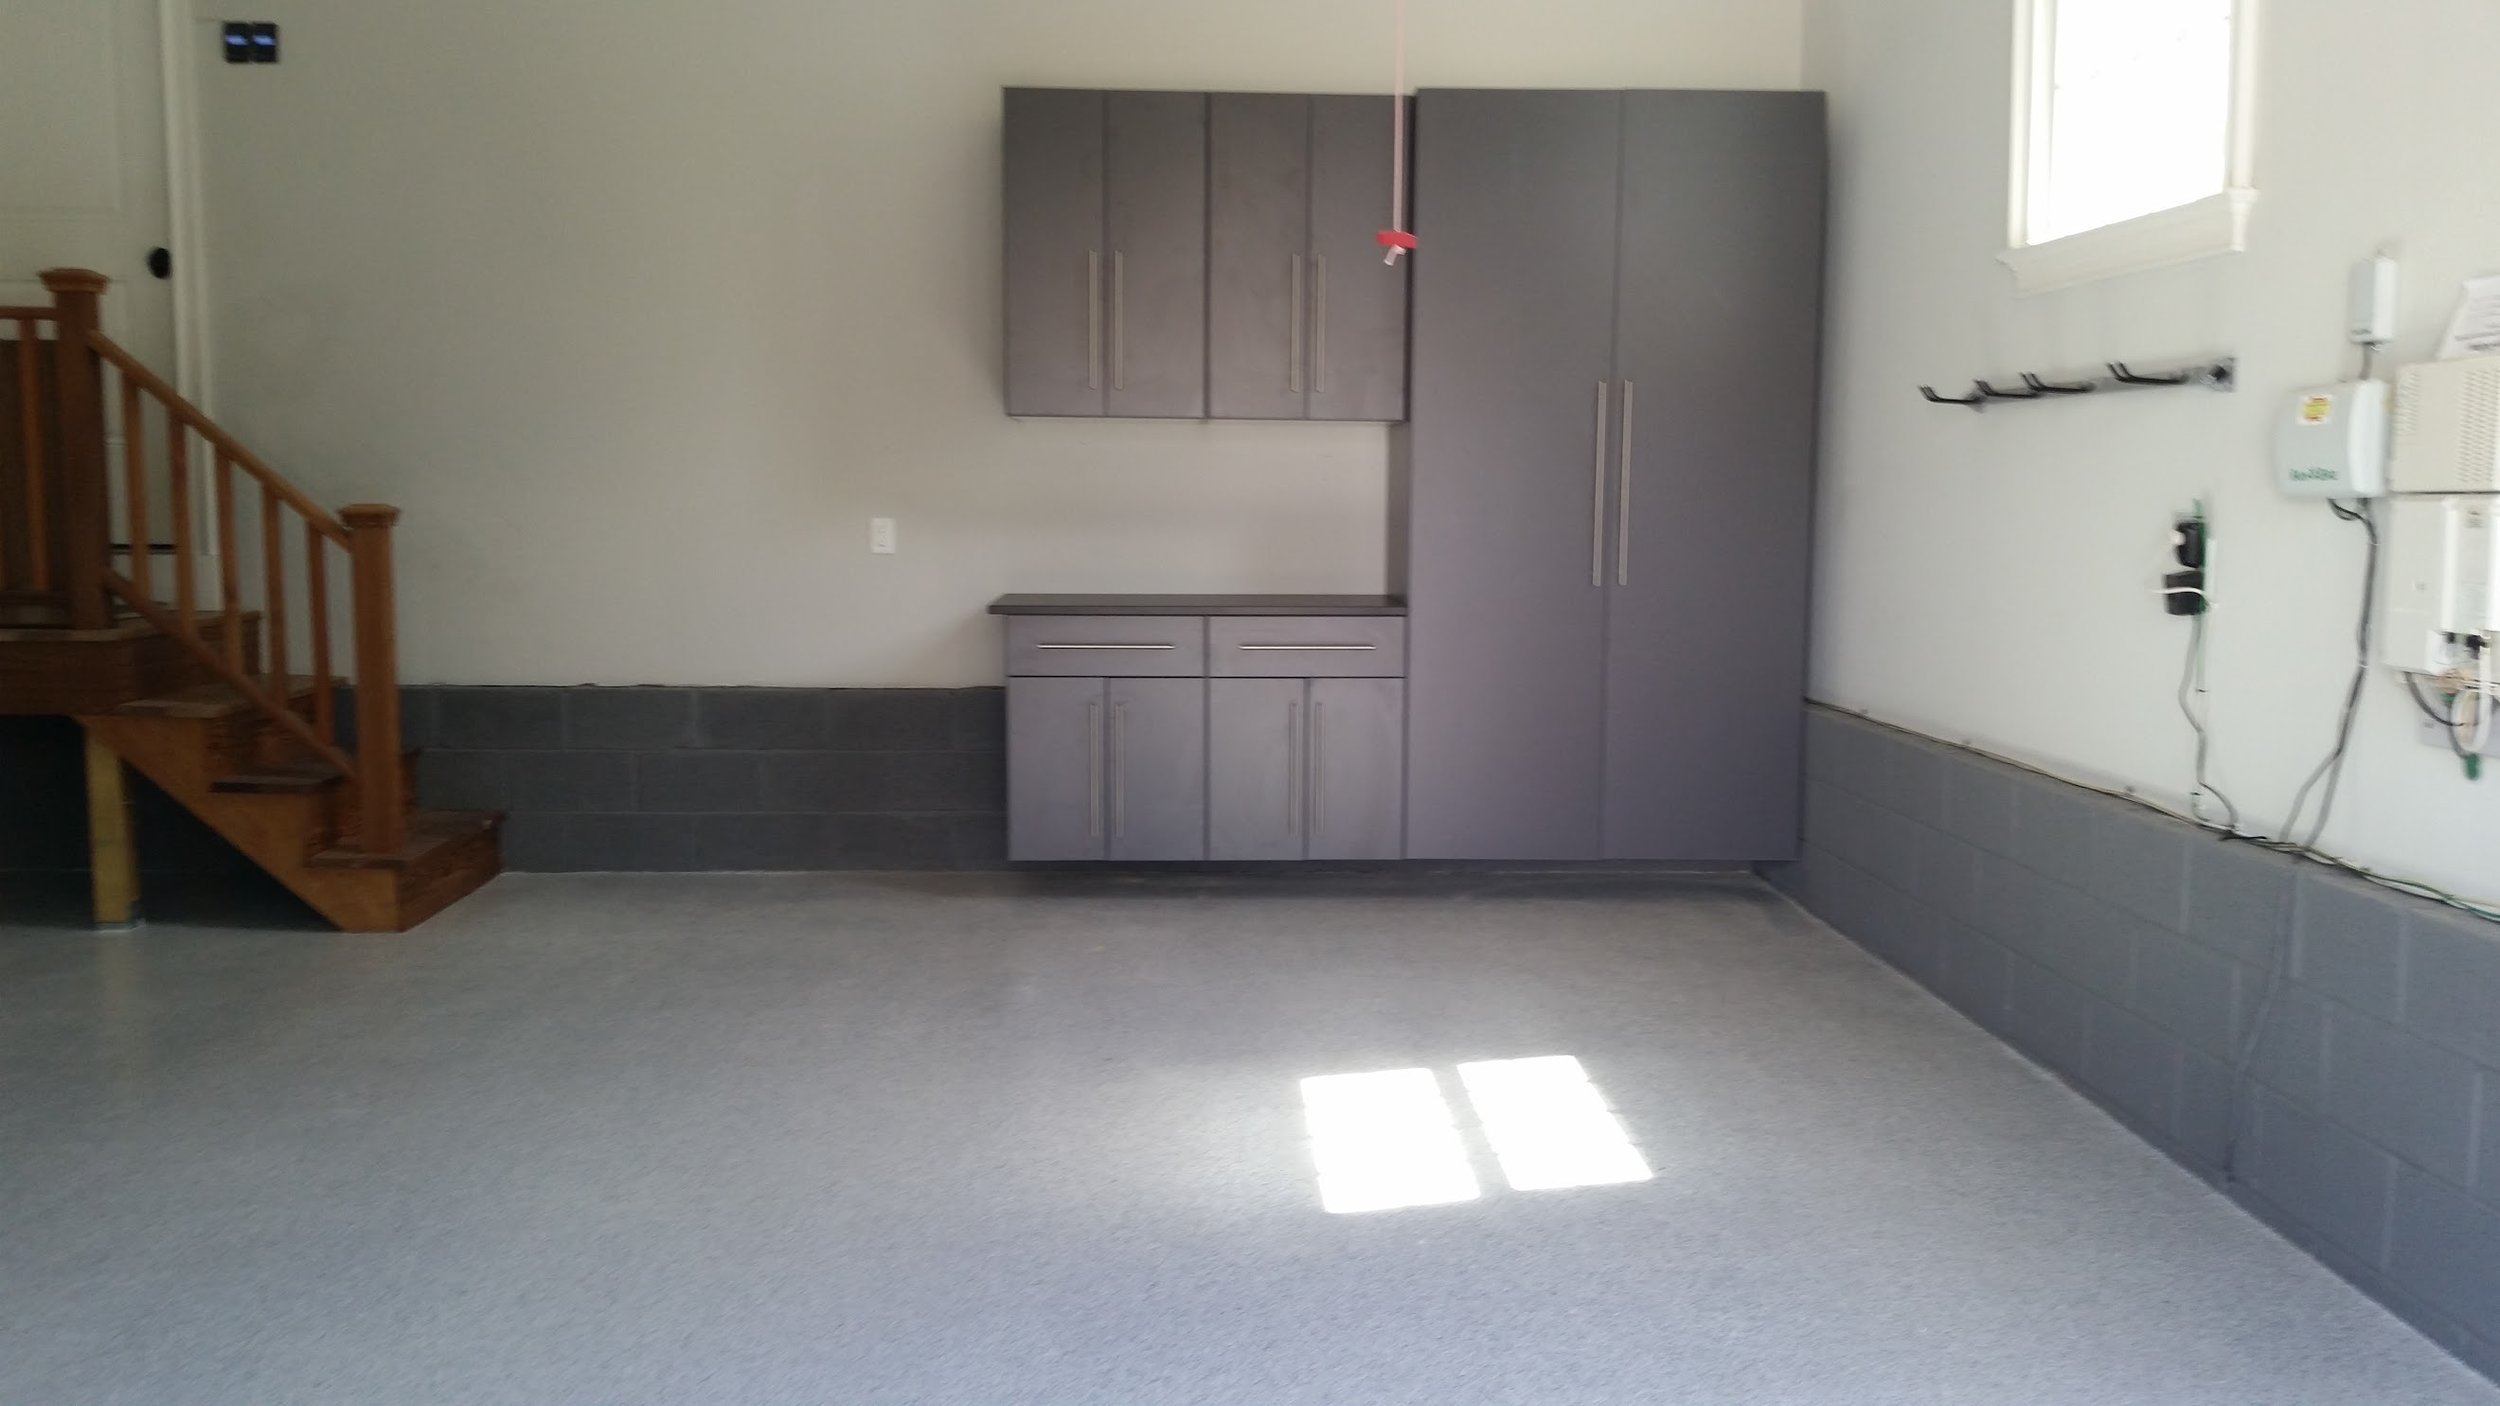 Garage concrete floor with polyurea / POLYASPARTIC coating with garage storage cabinets with work bench example